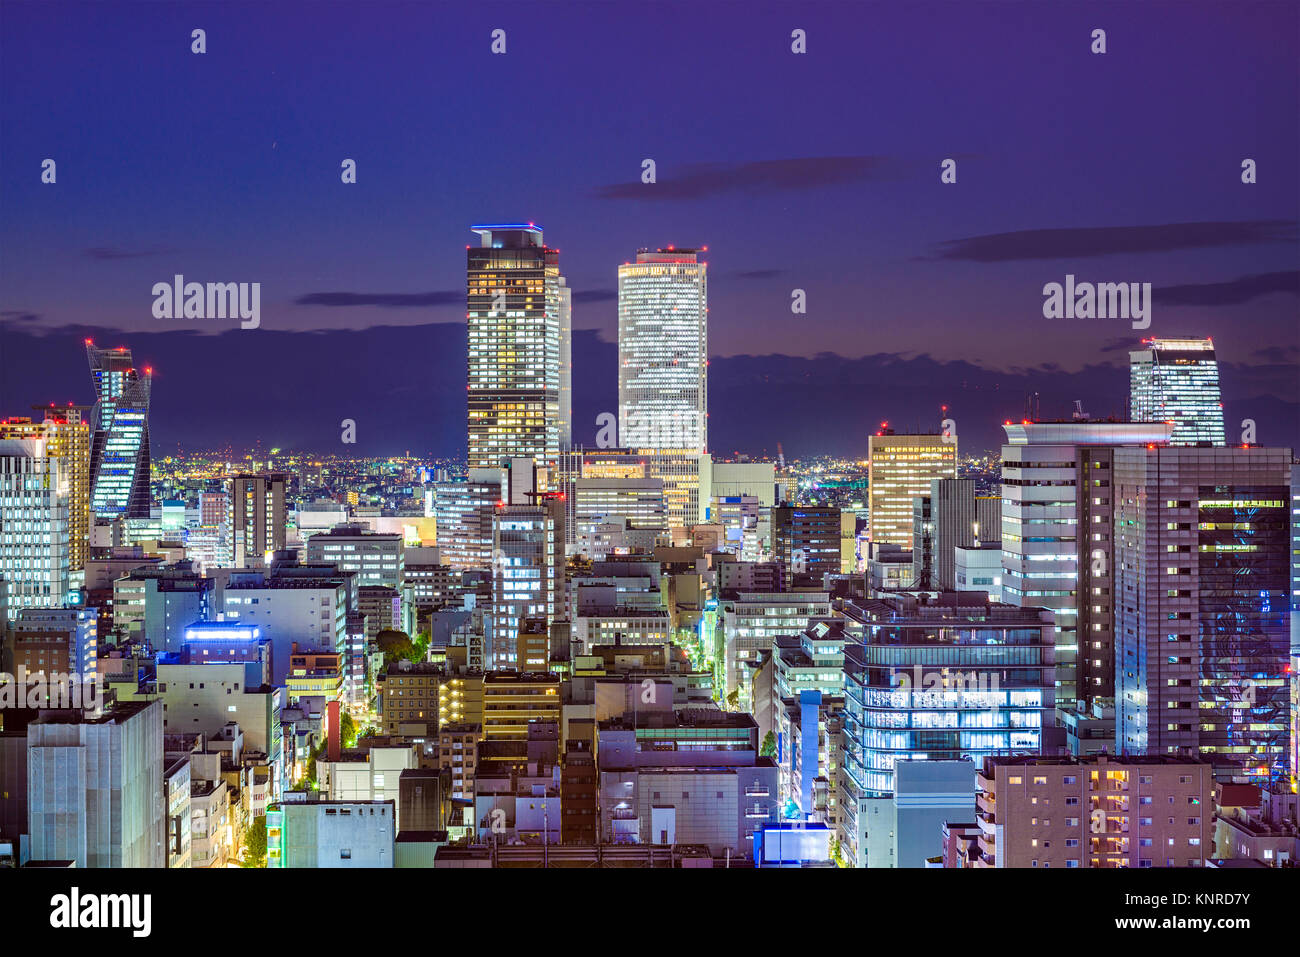 Nagoya, Aichi, Japan city skyline at night. - Stock Image